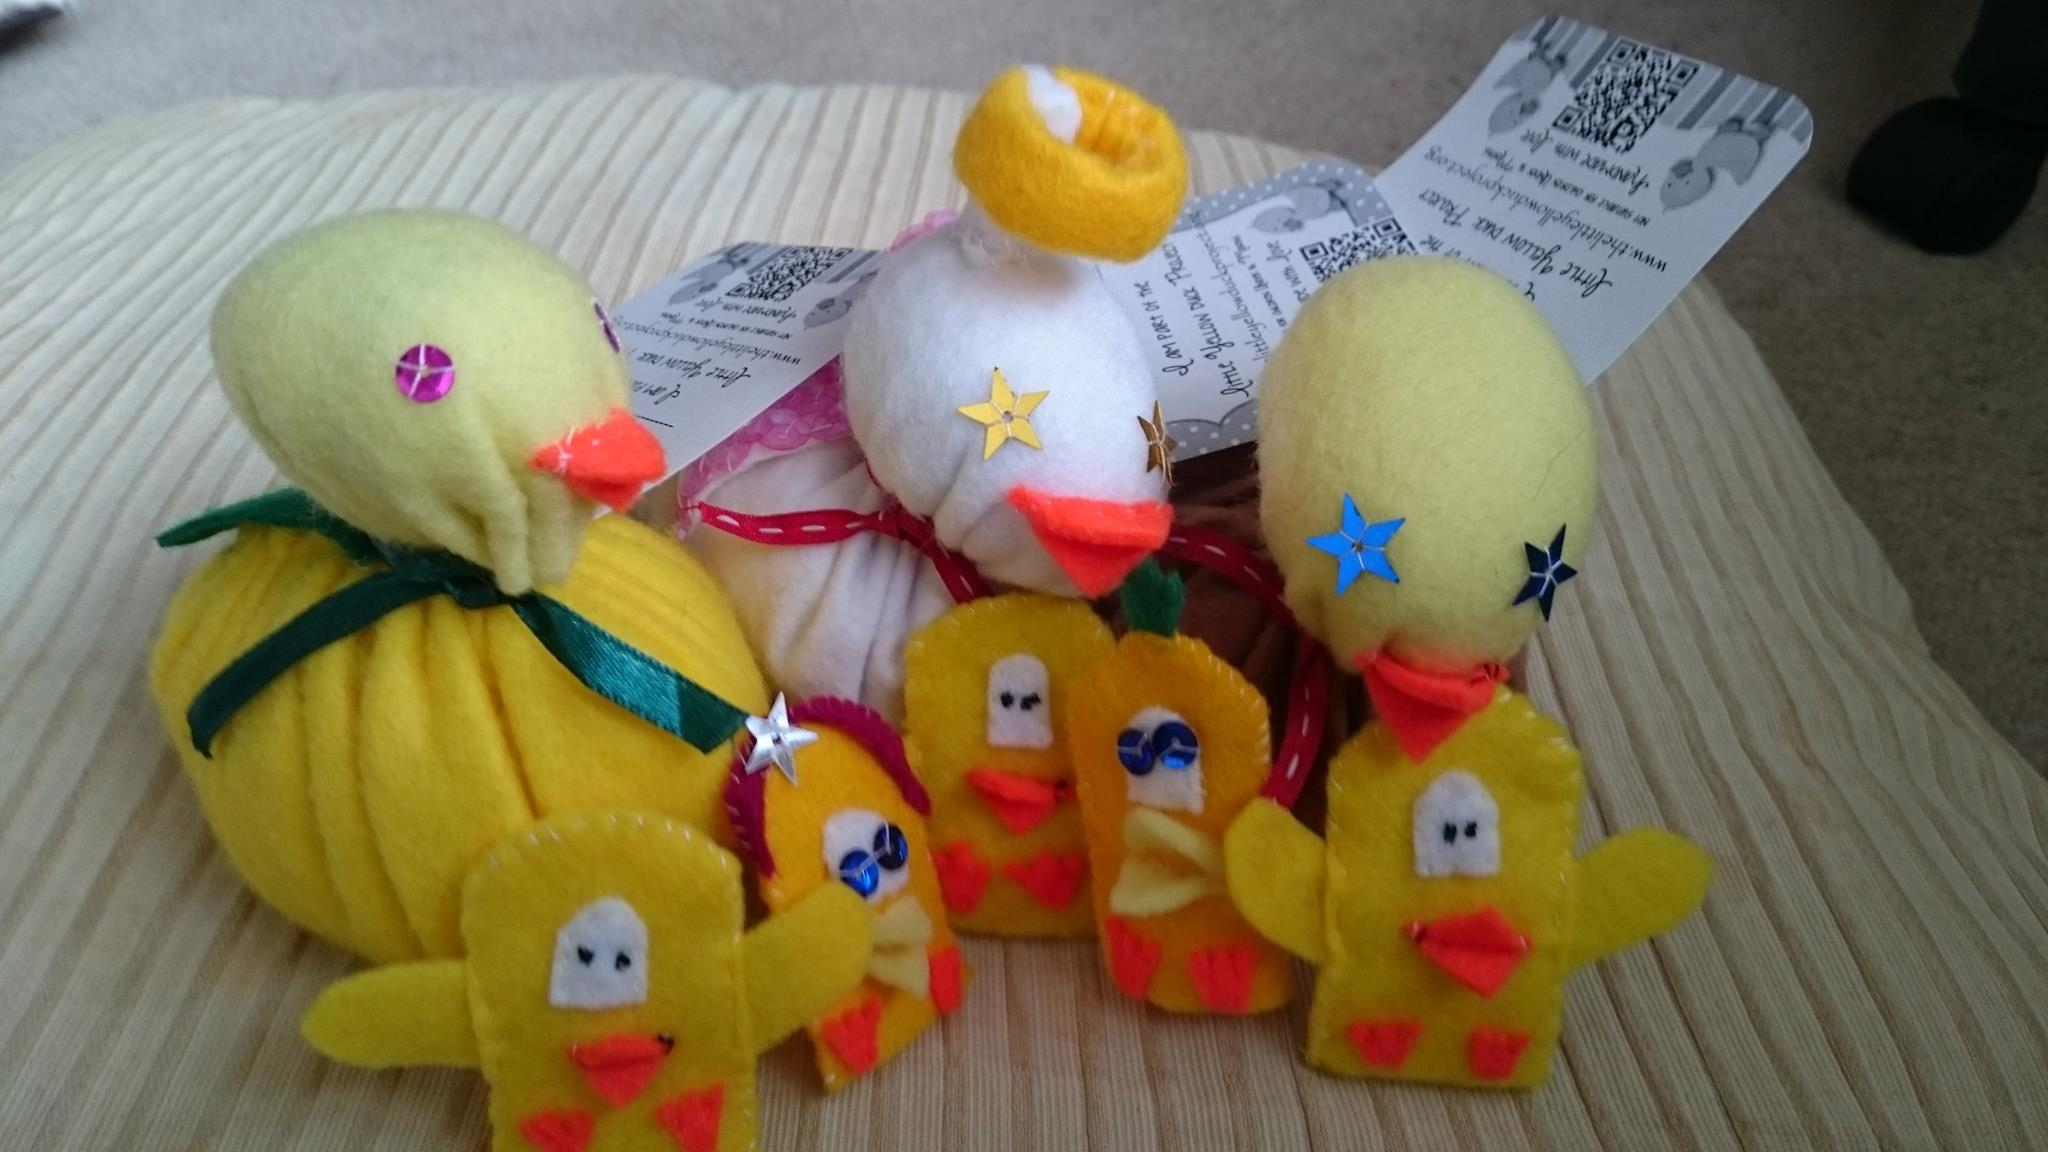 Karen's handmade ducks ready to visit Colchester Zoo and find new homes!